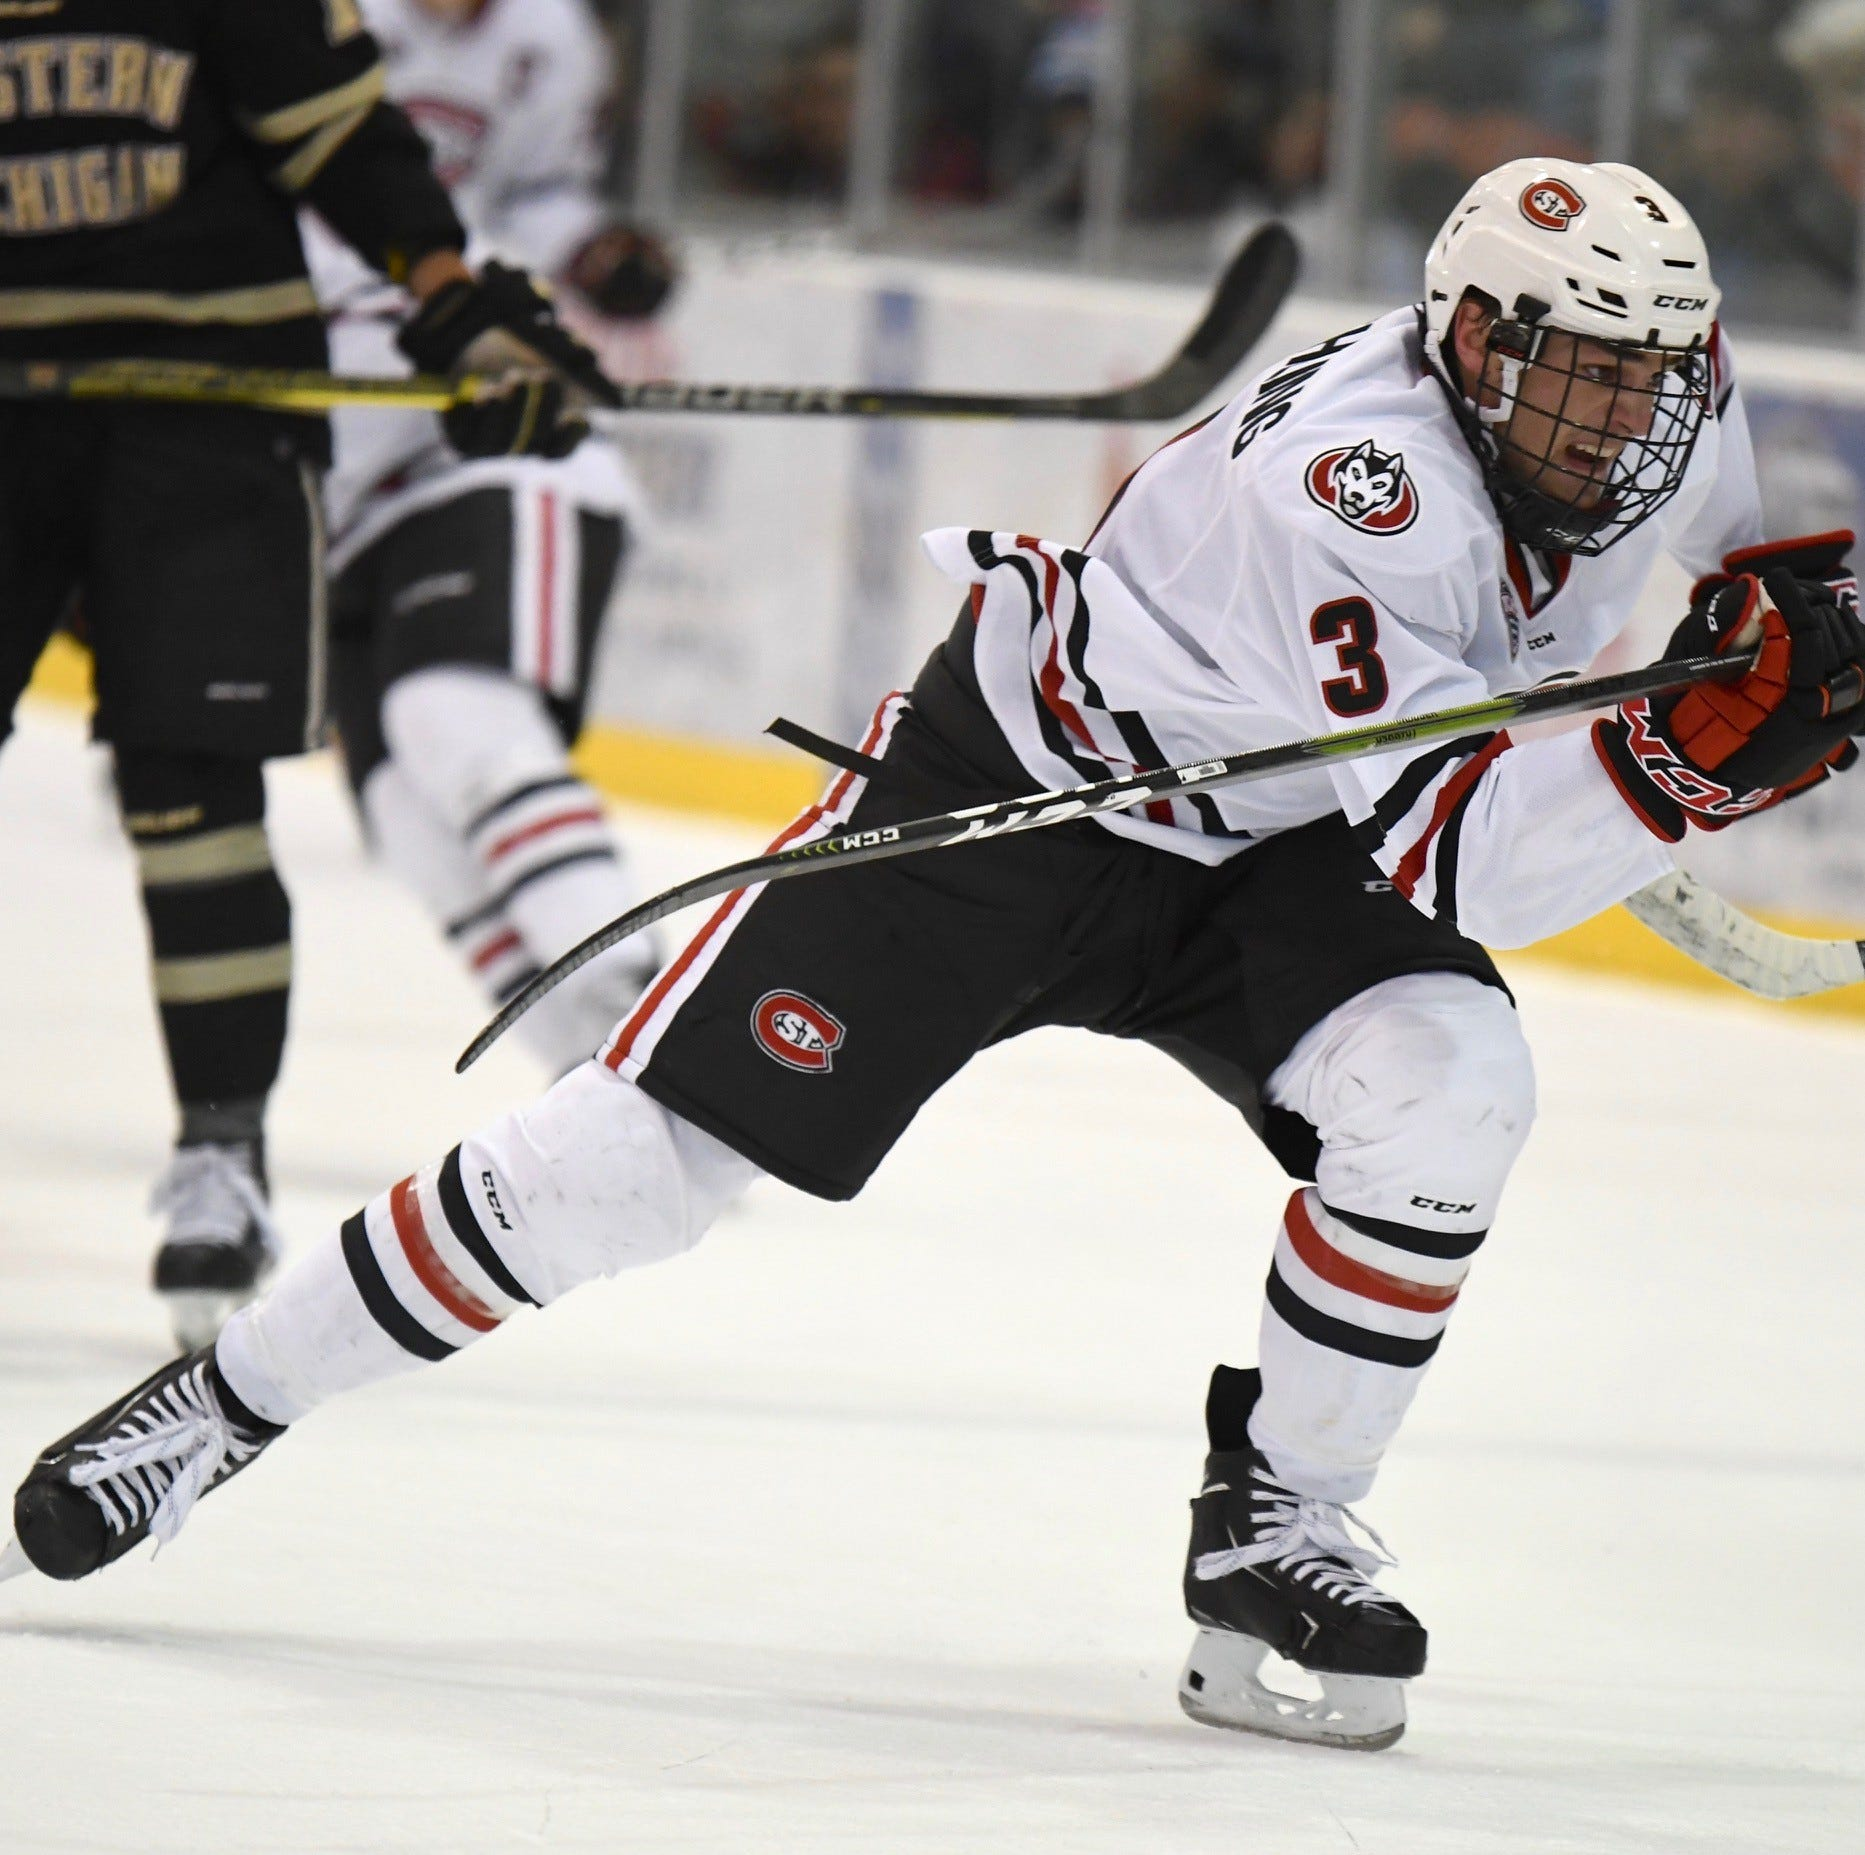 St. Cloud State junior forward Jack Poehling hustles after the puck against Western Michigan at the Herb Brooks National Hockey Center.